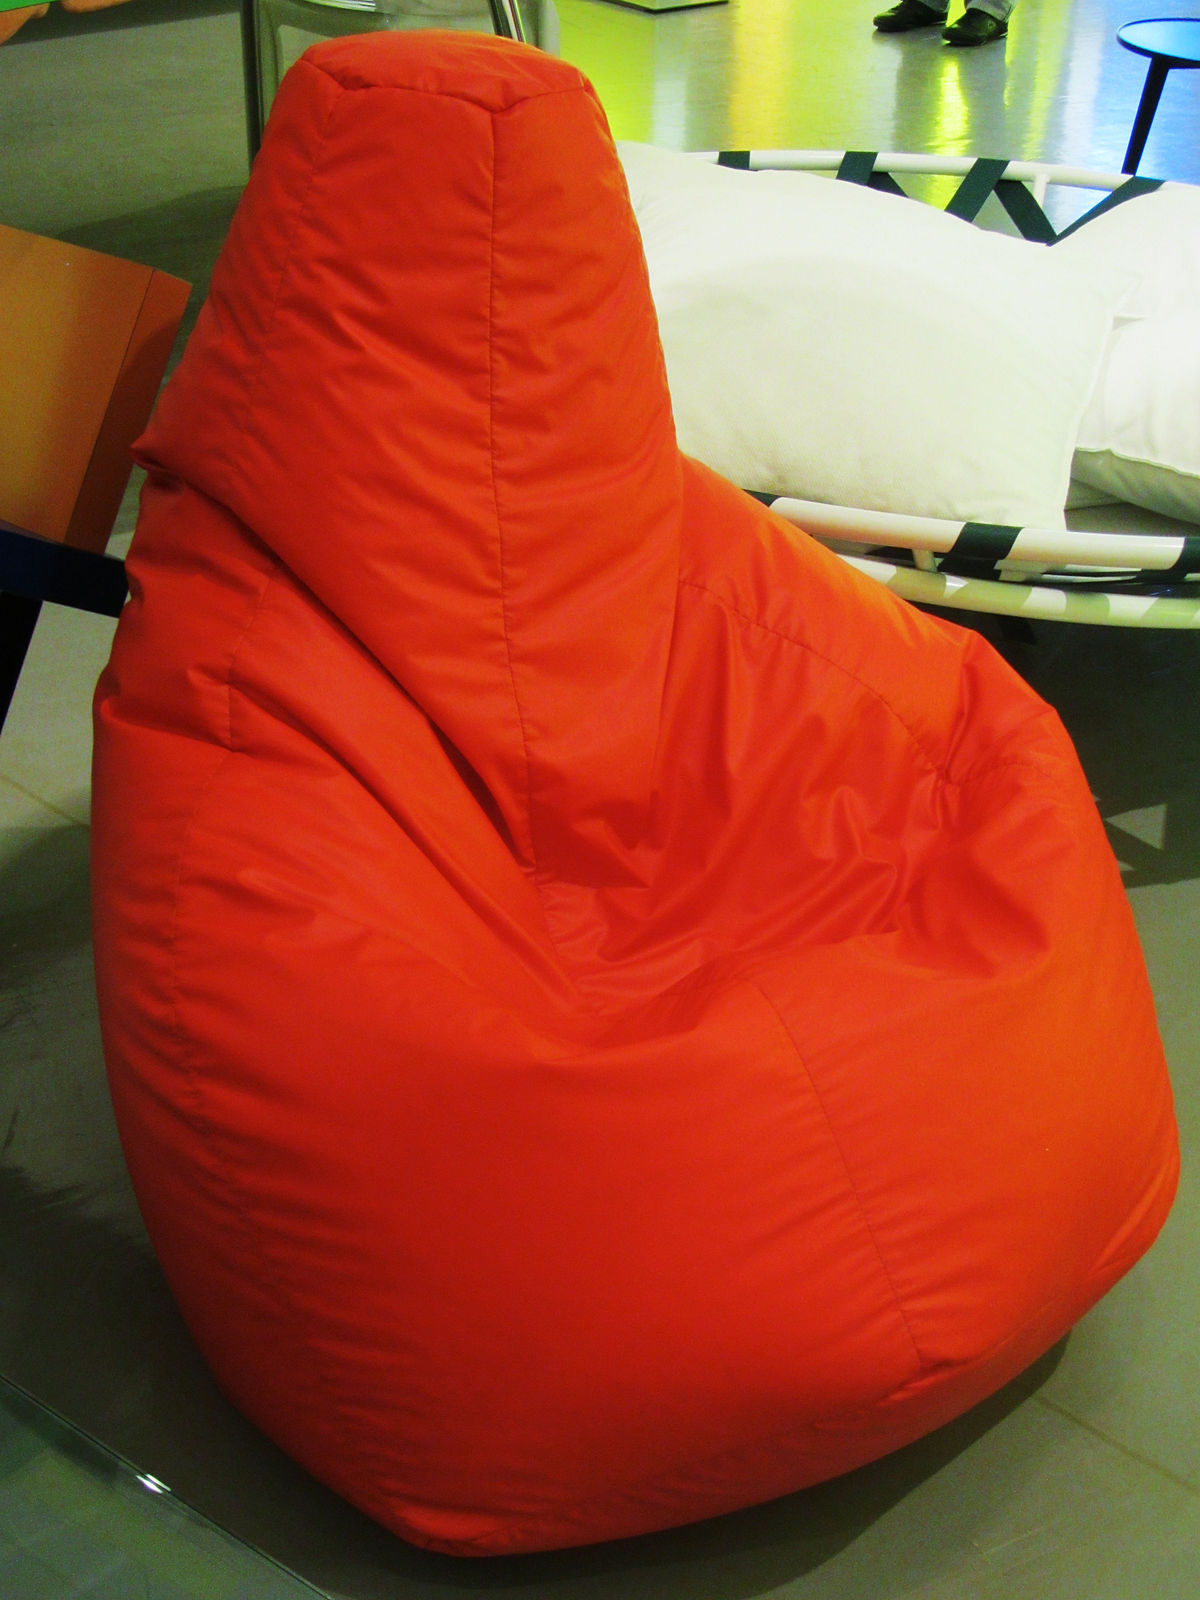 chair luckysac beanbag detail swimming alibaba lazy buy product bean on furniture pool bag com lounger